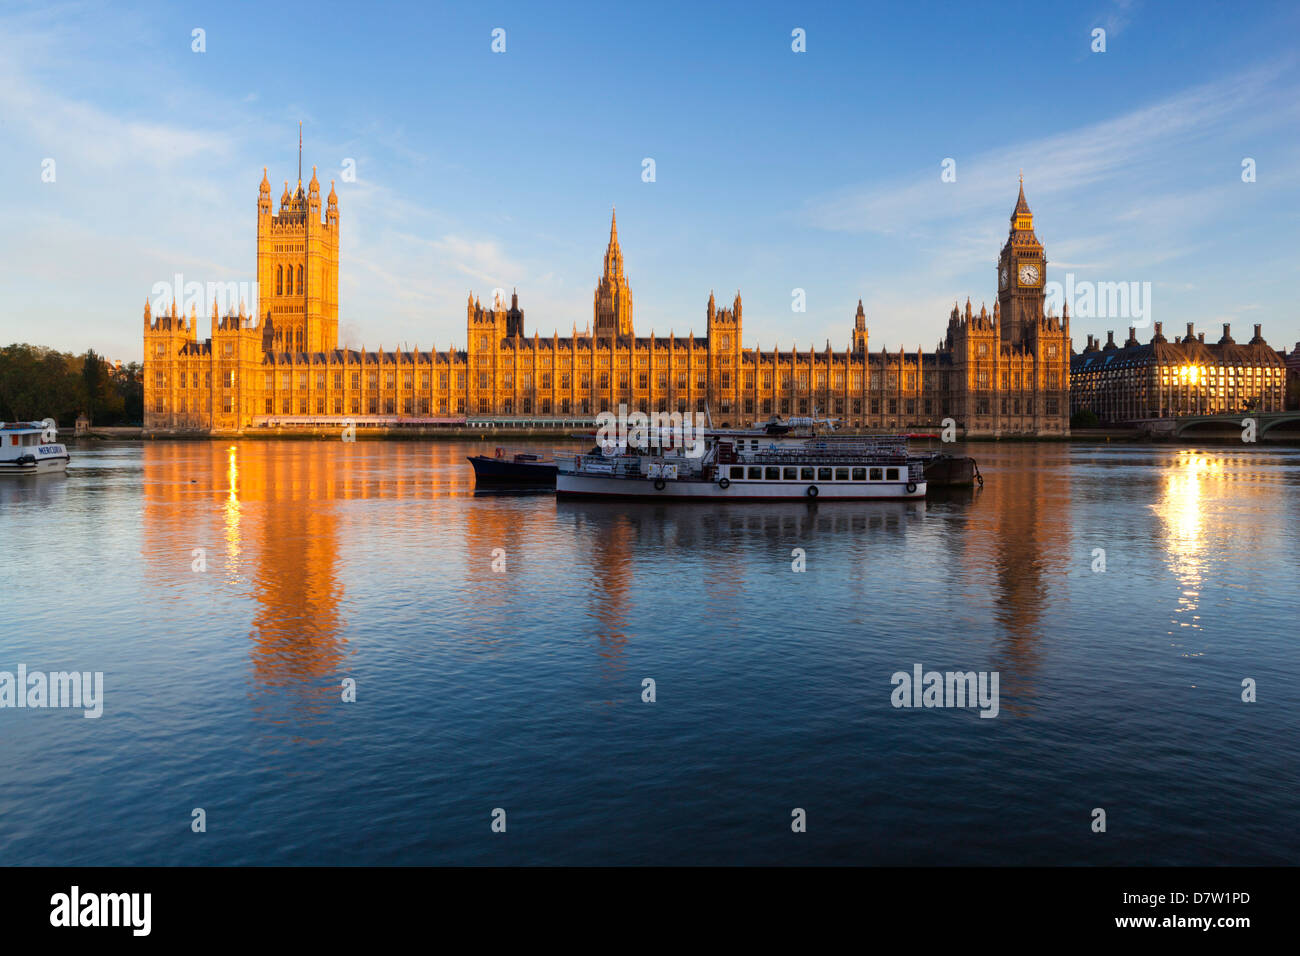 Houses of Parliament and River Thames, Westminster, London, England, United Kingdom - Stock Image